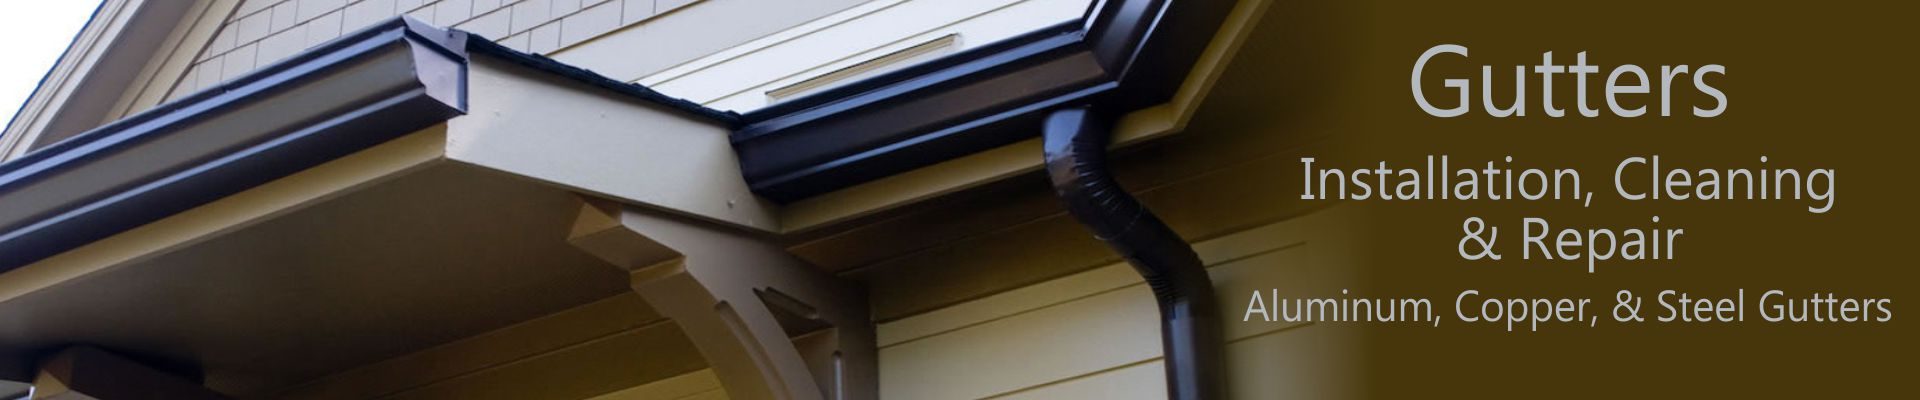 Abes-pacific-slide-1-gutters